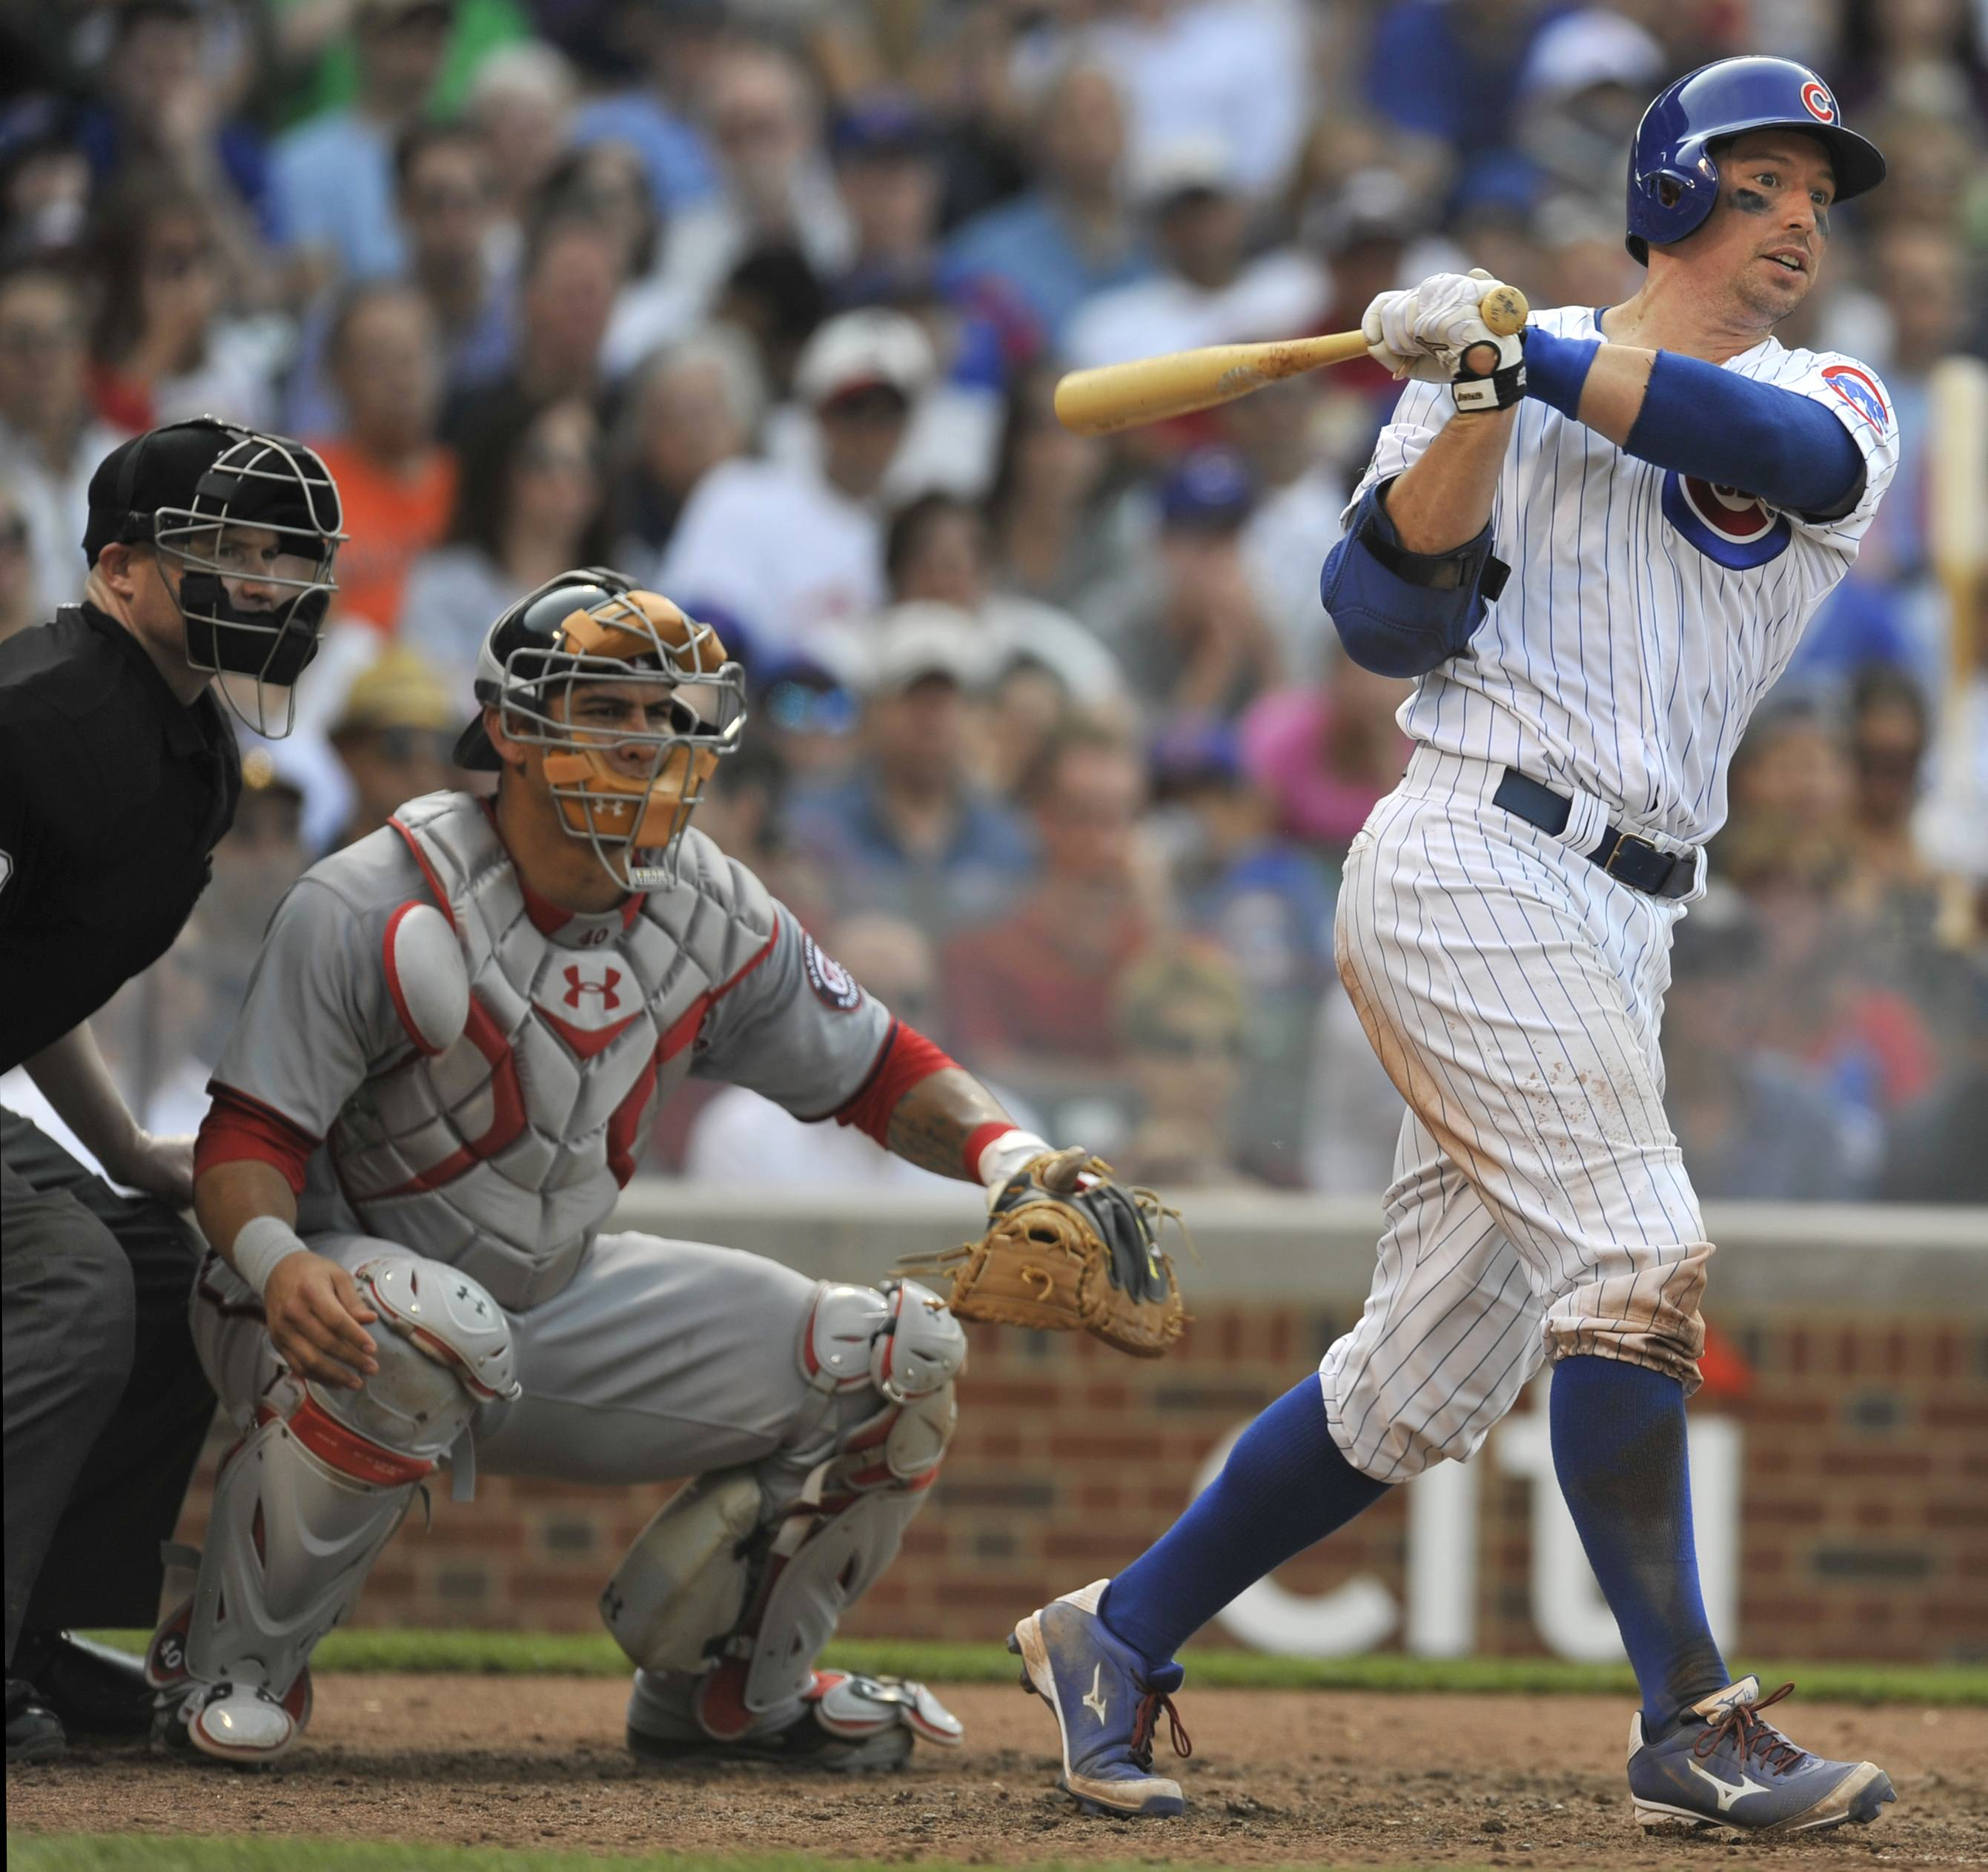 Light-hitting catcher John Baker had three hits, a walk and four RBIs, and Cubs starter Jason Hammel again mastered the Washington Nationals in a 7-2 victory Friday.